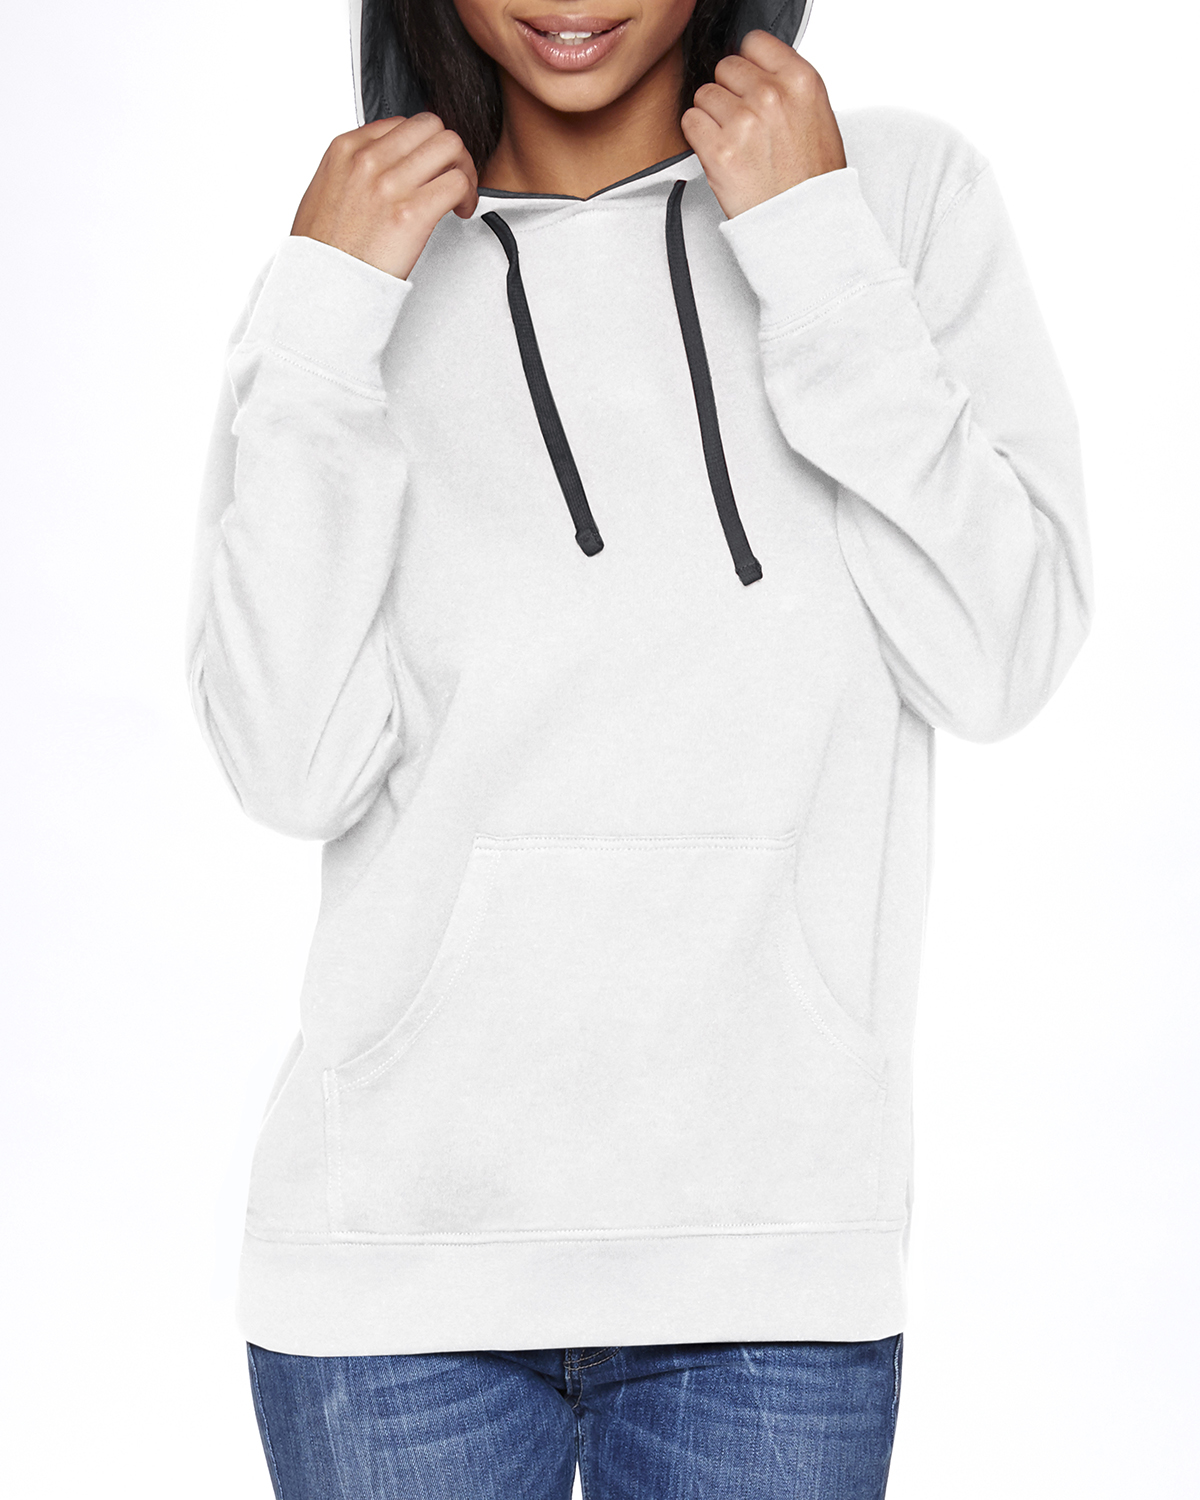 Next Level Apparel 9301 - Unisex French Terry Pullover ...